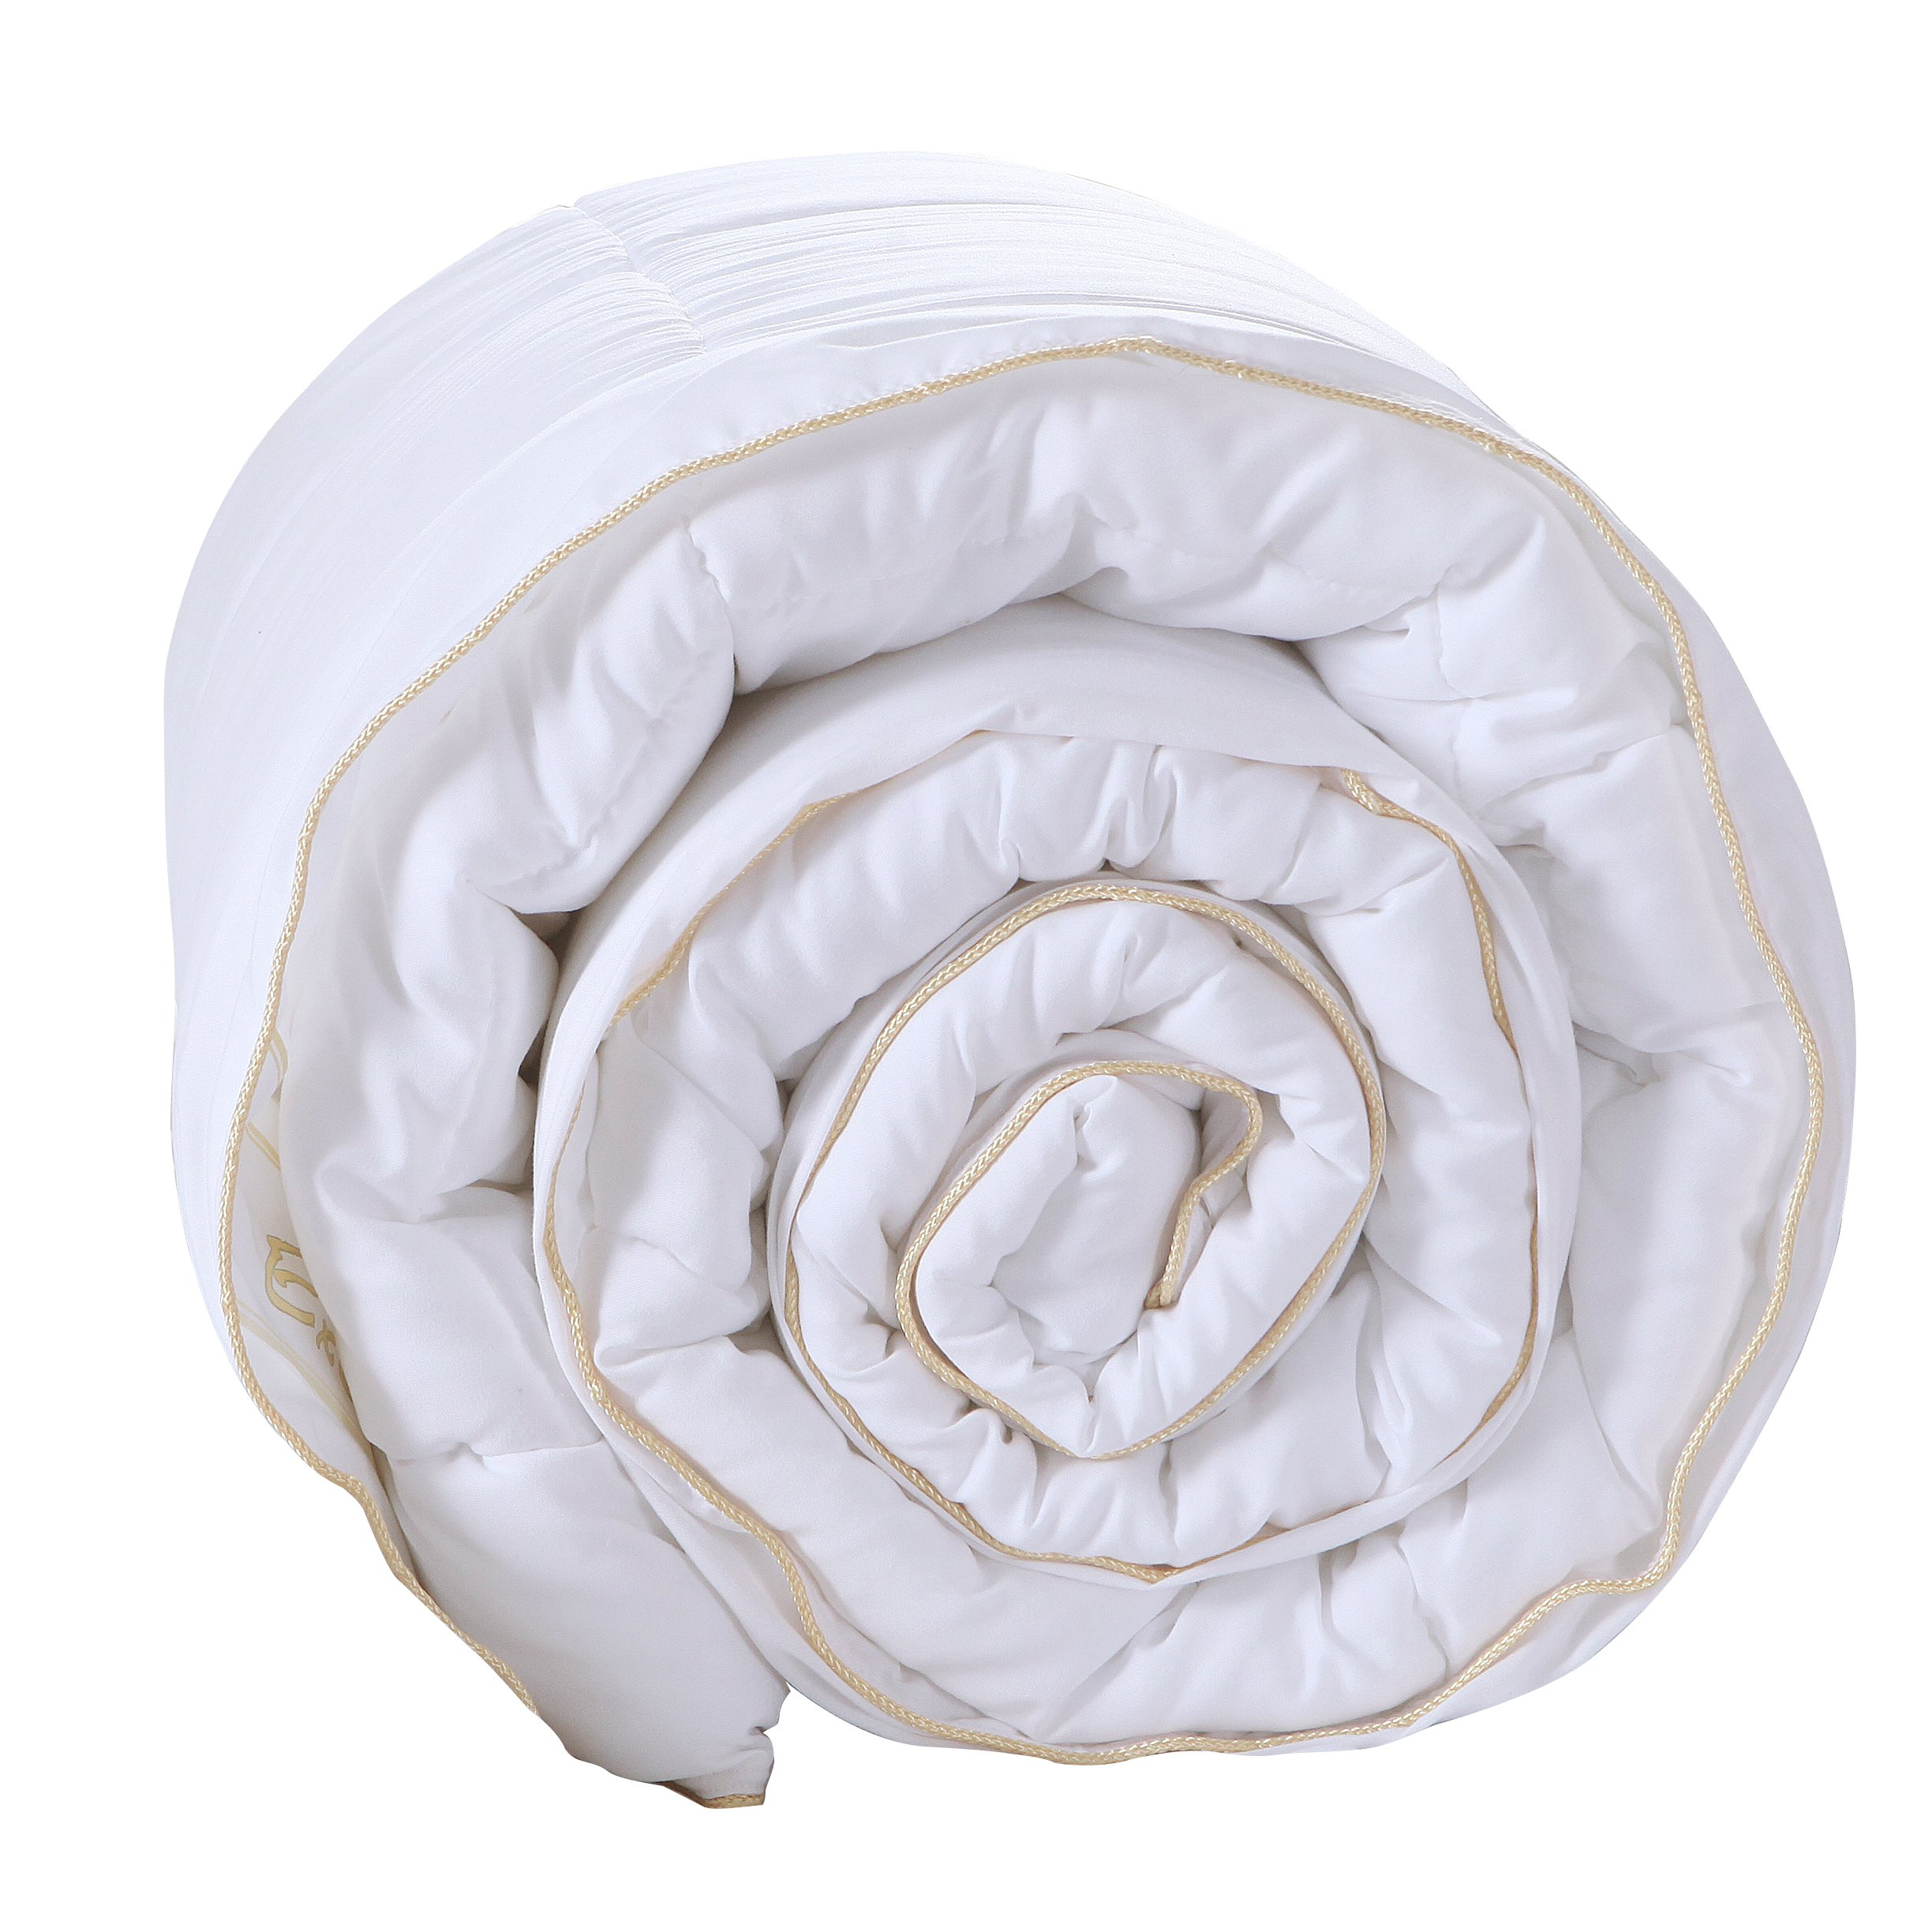 Exclusivo MezclaLuxury Queen Size White Down Alternative Quilted Comforter Duvet Insert with Corner Tabs/Loops for All Seasons - Soft, Hypollergenic and Lightweight